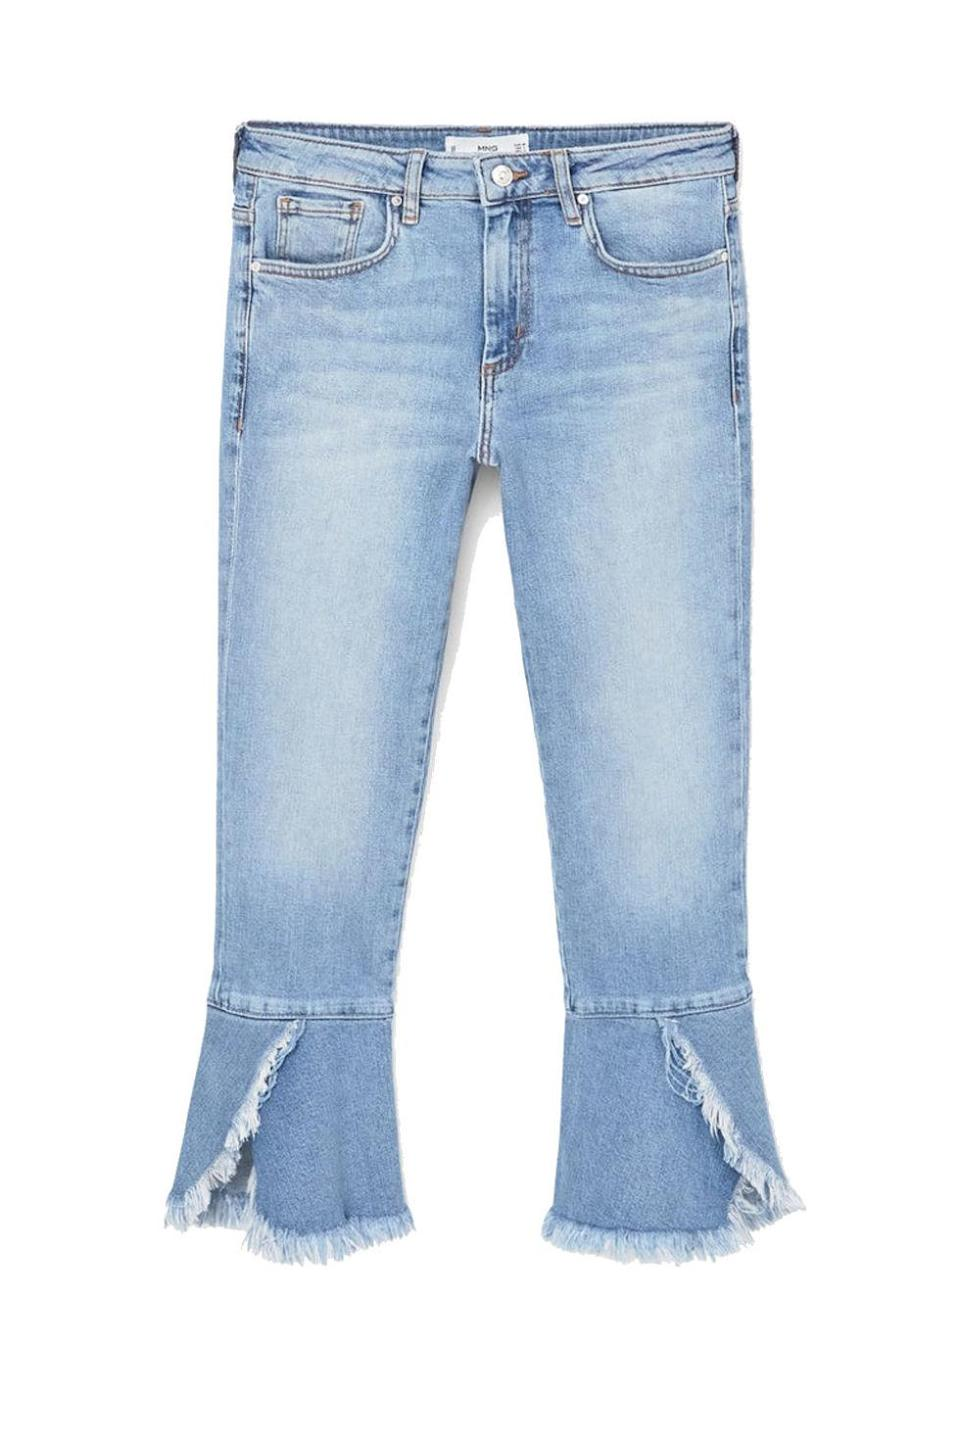 """<p>Important: When you turn sideways, the little petal-like peplums balance out your bum, something you can't say about skinny jeans, COUGH. </p><p><strong>BUY IT:</strong> Mango, $80; <a href=""""http://shop.mango.com/US/p0/women/clothing/jeans/straight/peplum-flare-jeans?id=83047608_TM&n=1&s=prendas.tejanos"""" rel=""""nofollow noopener"""" target=""""_blank"""" data-ylk=""""slk:shop.mango.com"""" class=""""link rapid-noclick-resp"""">shop.mango.com</a>.</p>"""